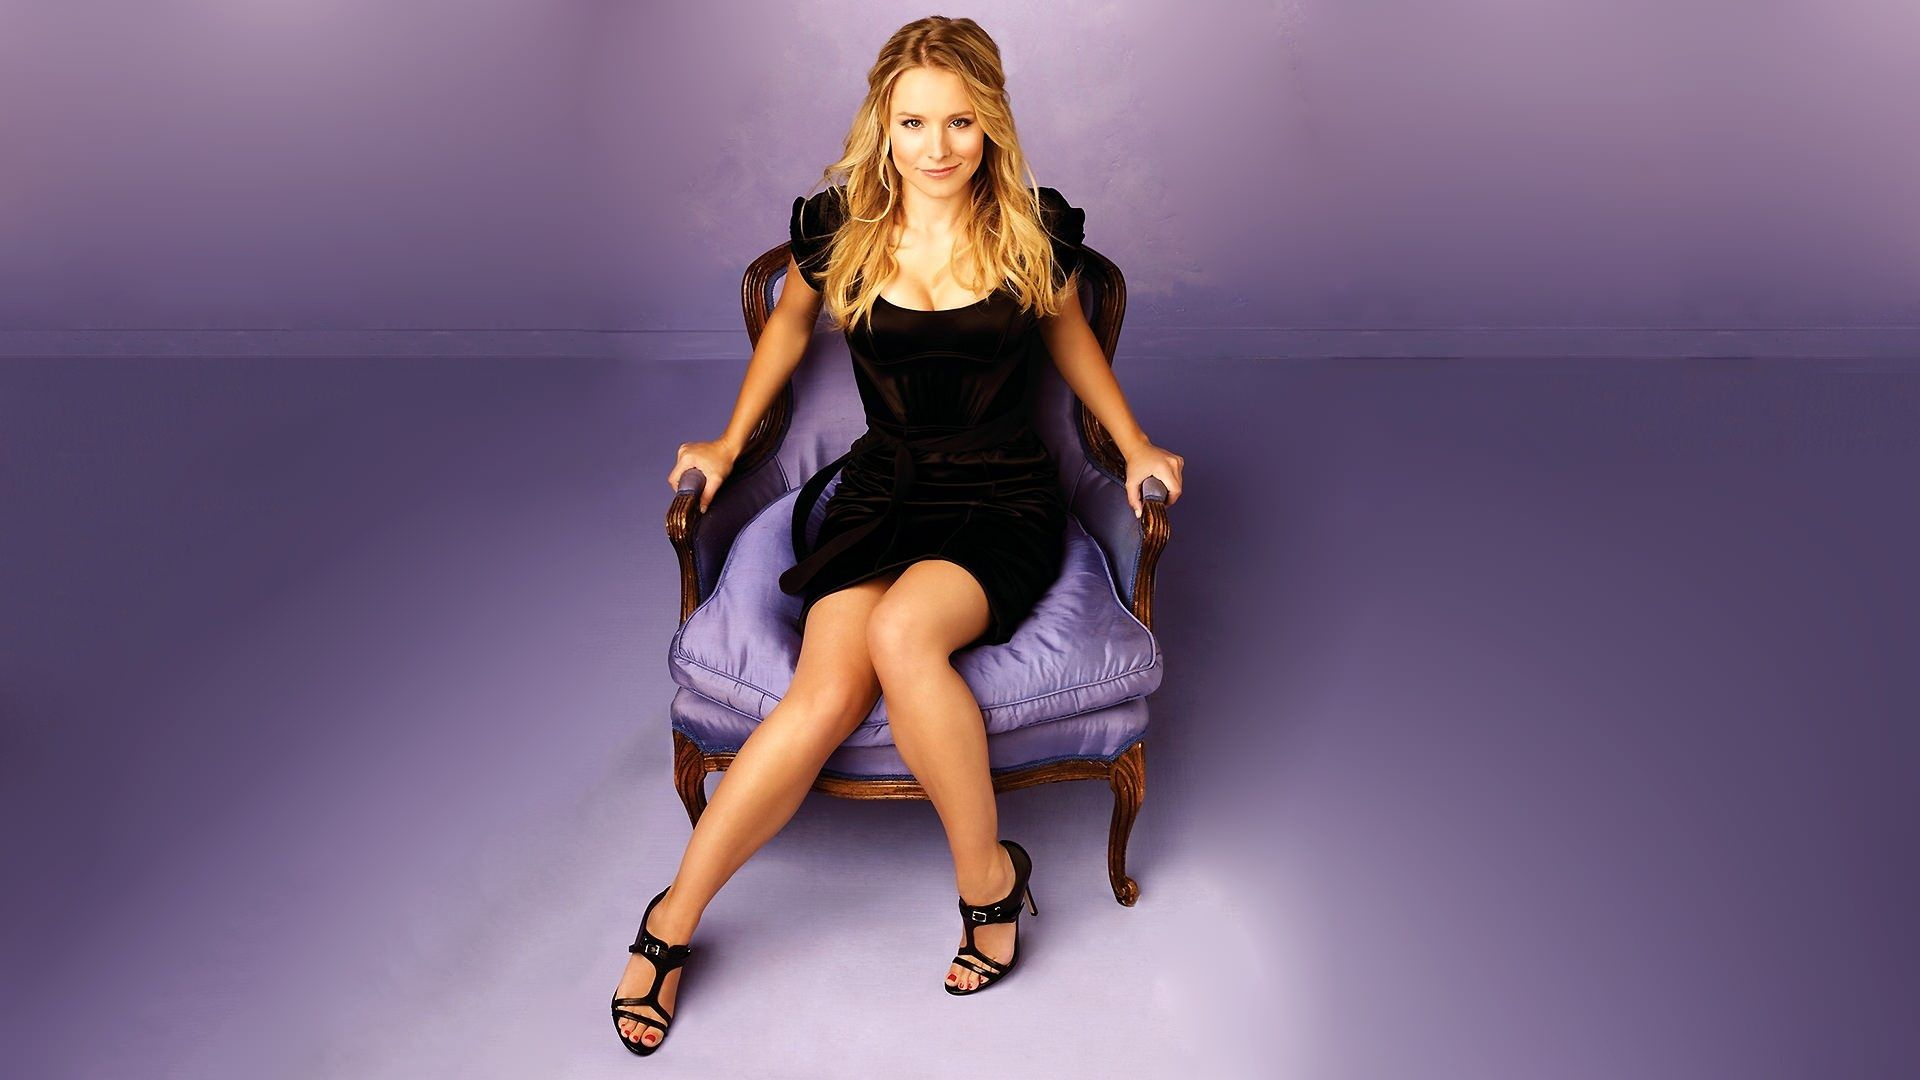 Kristen Bell Hd Wallpaper Photos Widescreen Wallpapers Pictures To Pin On Pinterest